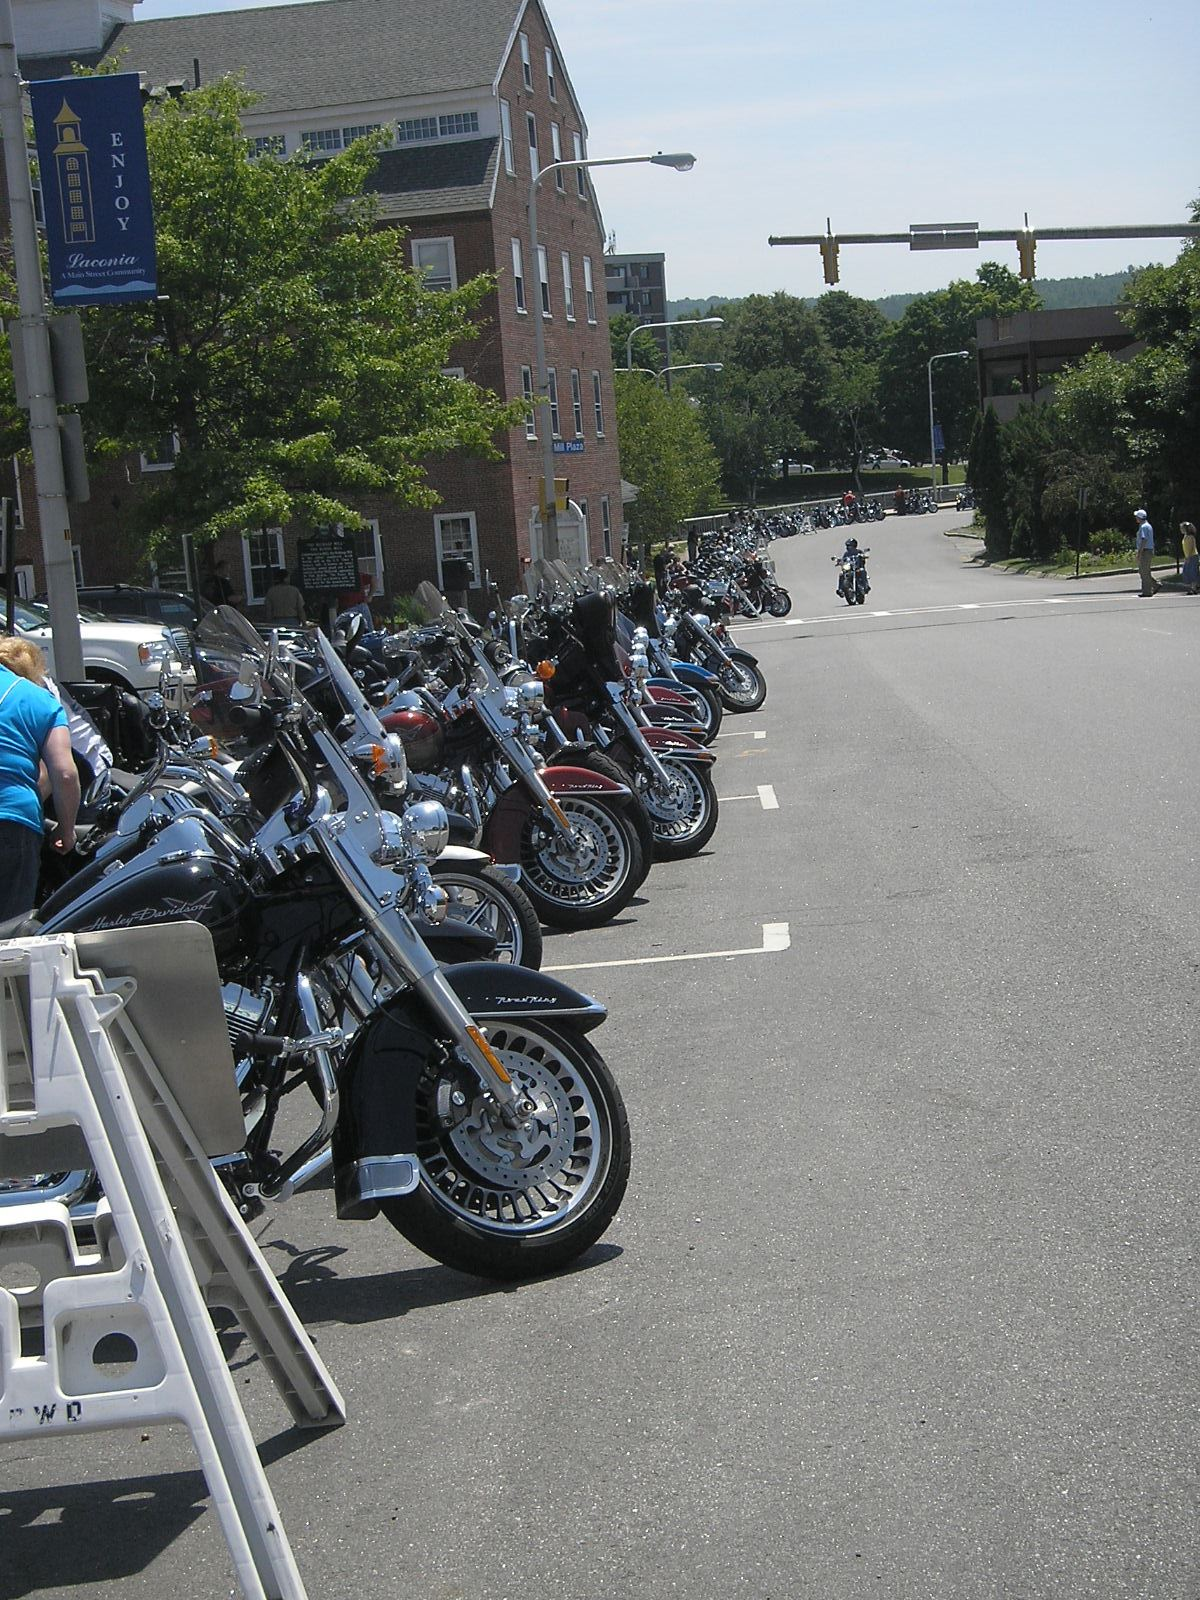 The motorcycle parking along Beacon Street, 2010